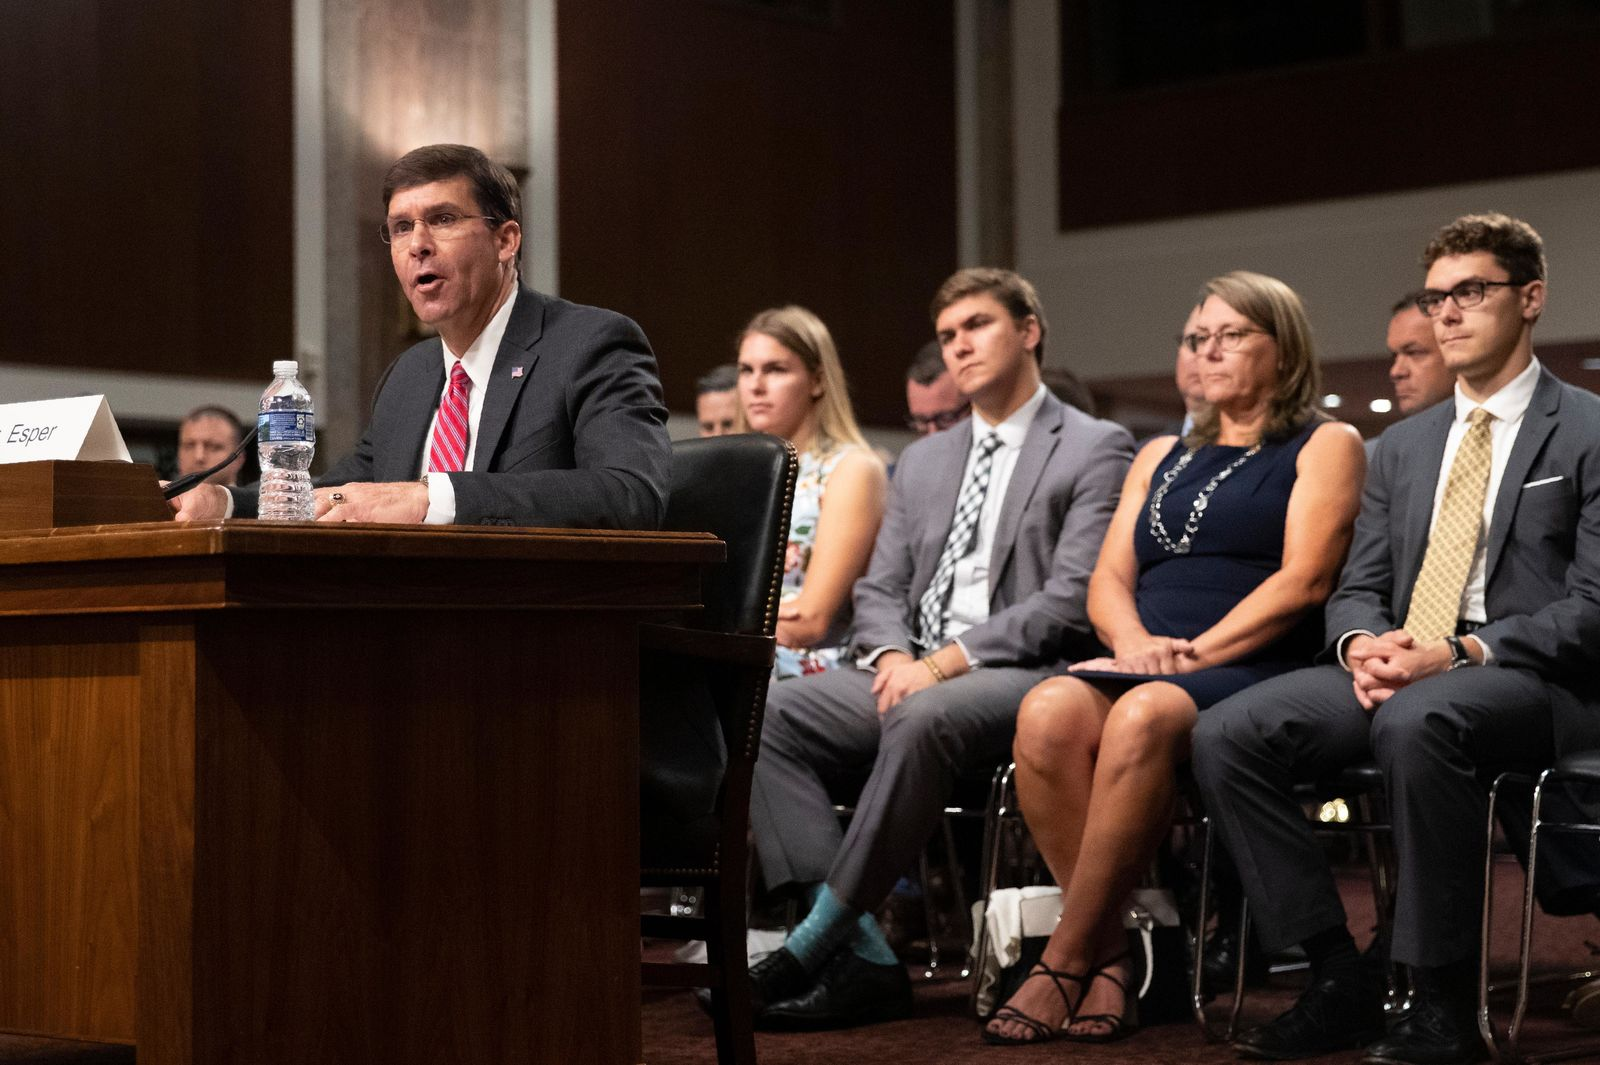 Secretary of the Army and Secretary of Defense nominee Mark Esper accompanied by his family, from back left, daughter Kate Esper, son Luke Esper, his wife Leah Esper and son John Esper, testifies before a Senate Armed Services Committee confirmation hearing on Capitol Hill in Washington, Tuesday, July 16, 2019. (AP Photo/Manuel Balce Ceneta)